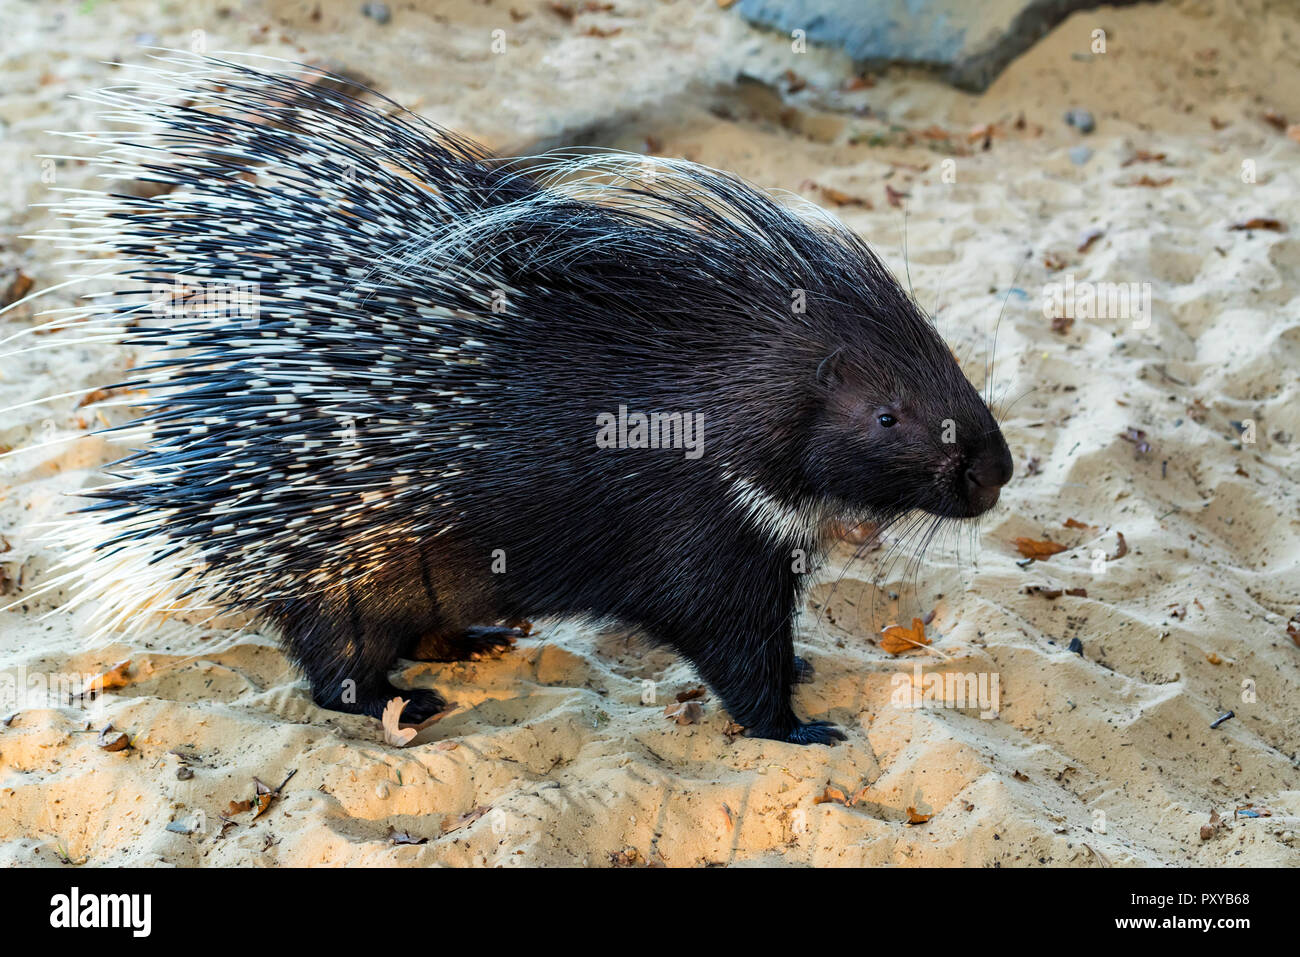 Indian Crested Porcupine or Hystrix indica on sand - Stock Image